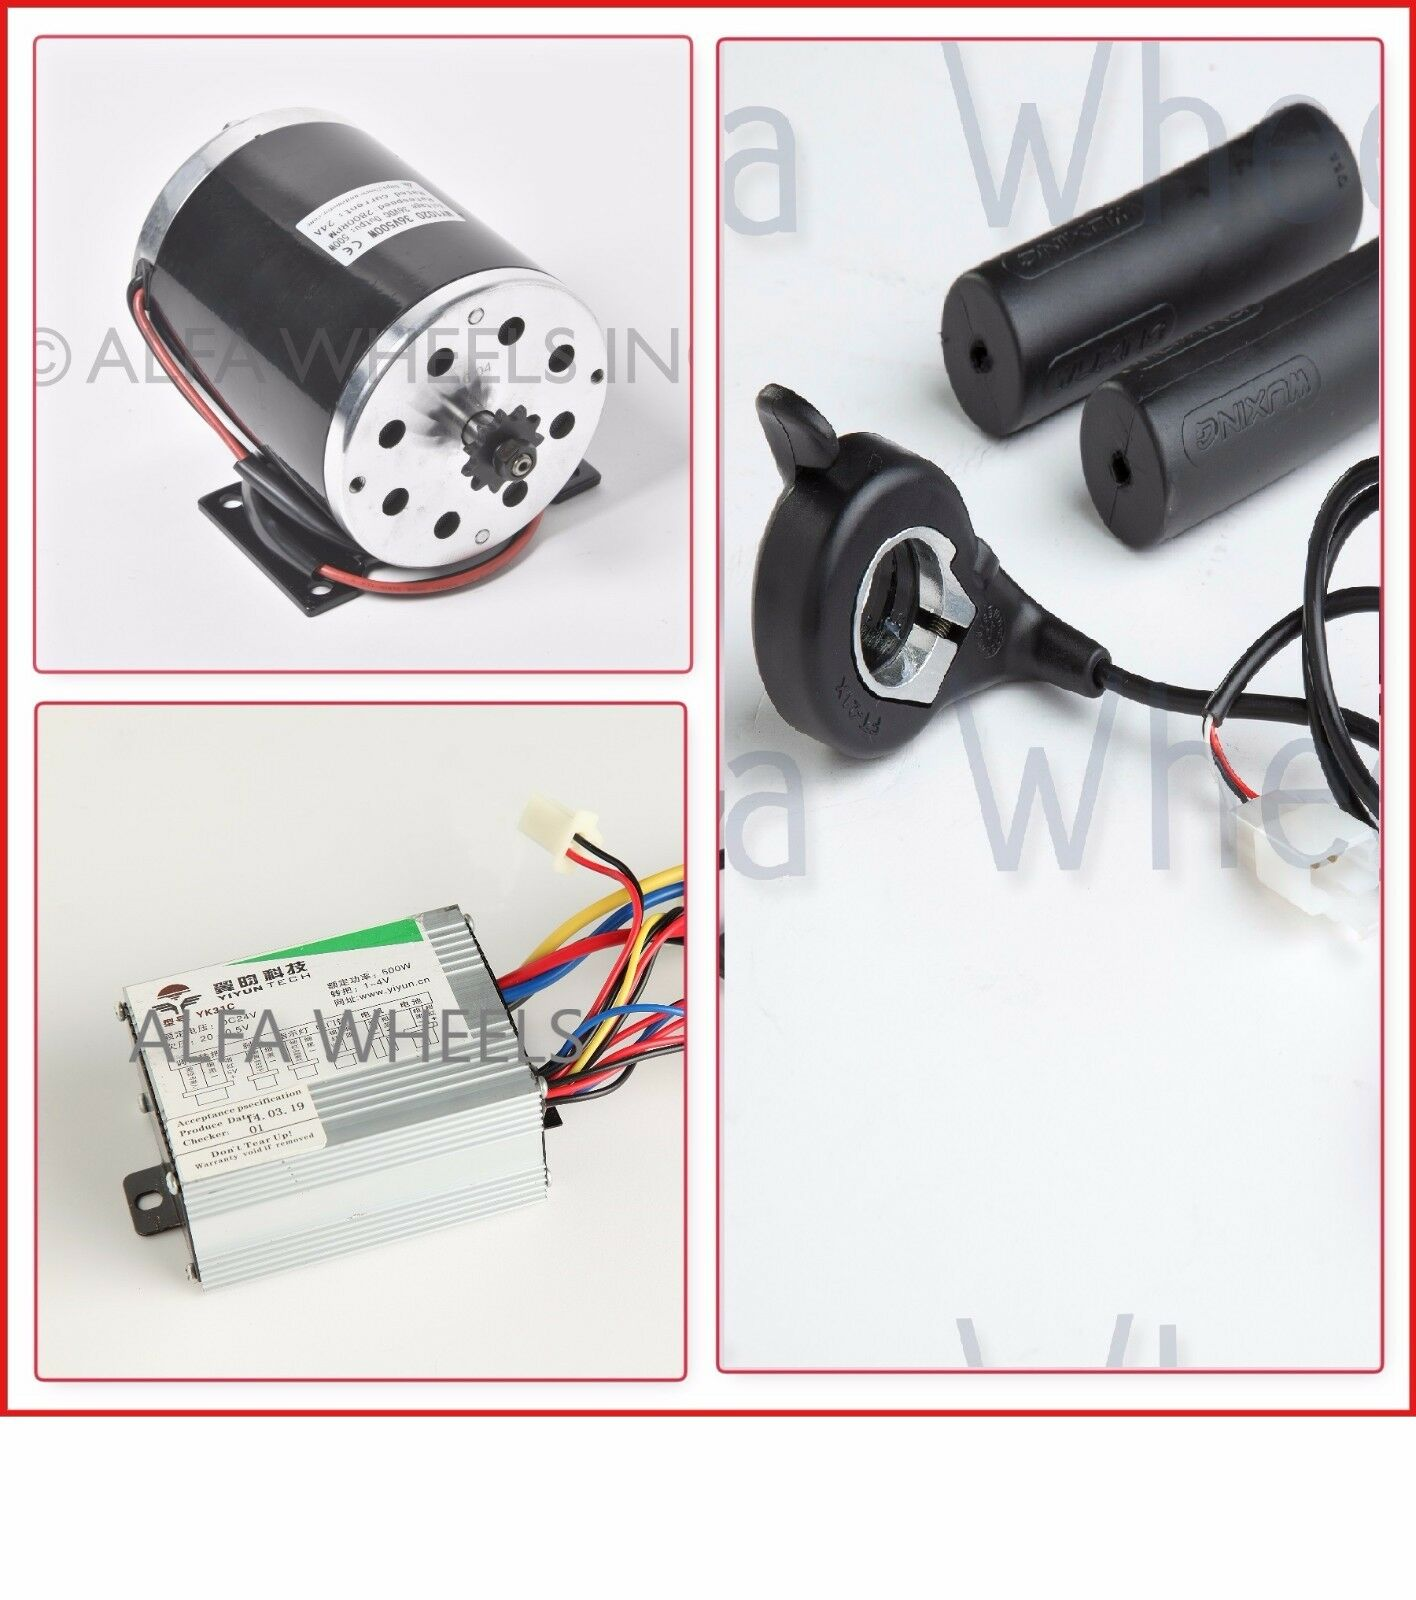 500 W 36 V DC electric 1020 motor kit w base speed control & thumb Throssotle